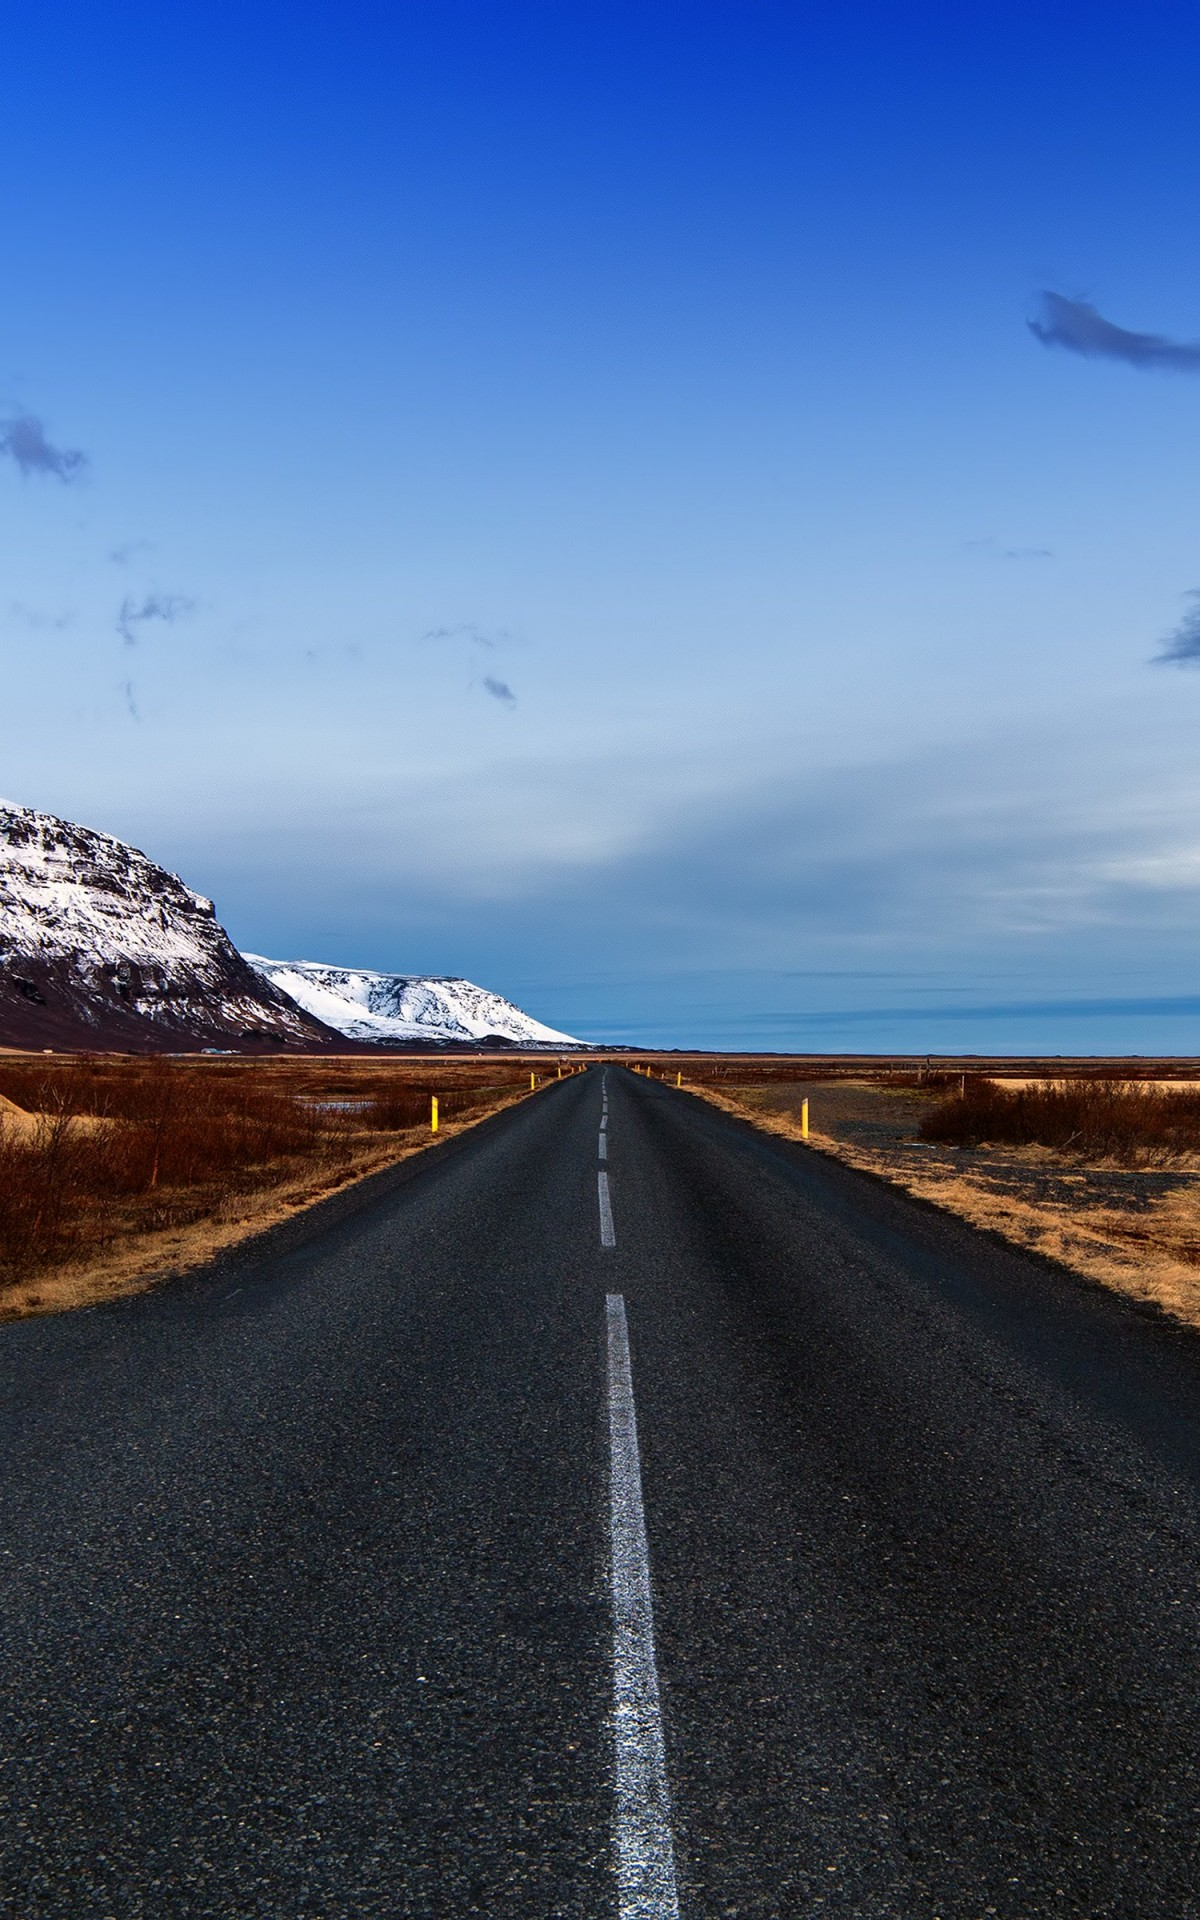 Icelandic Road, Skaftafell, Iceland Wallpaper for Amazon Kindle Fire HDX